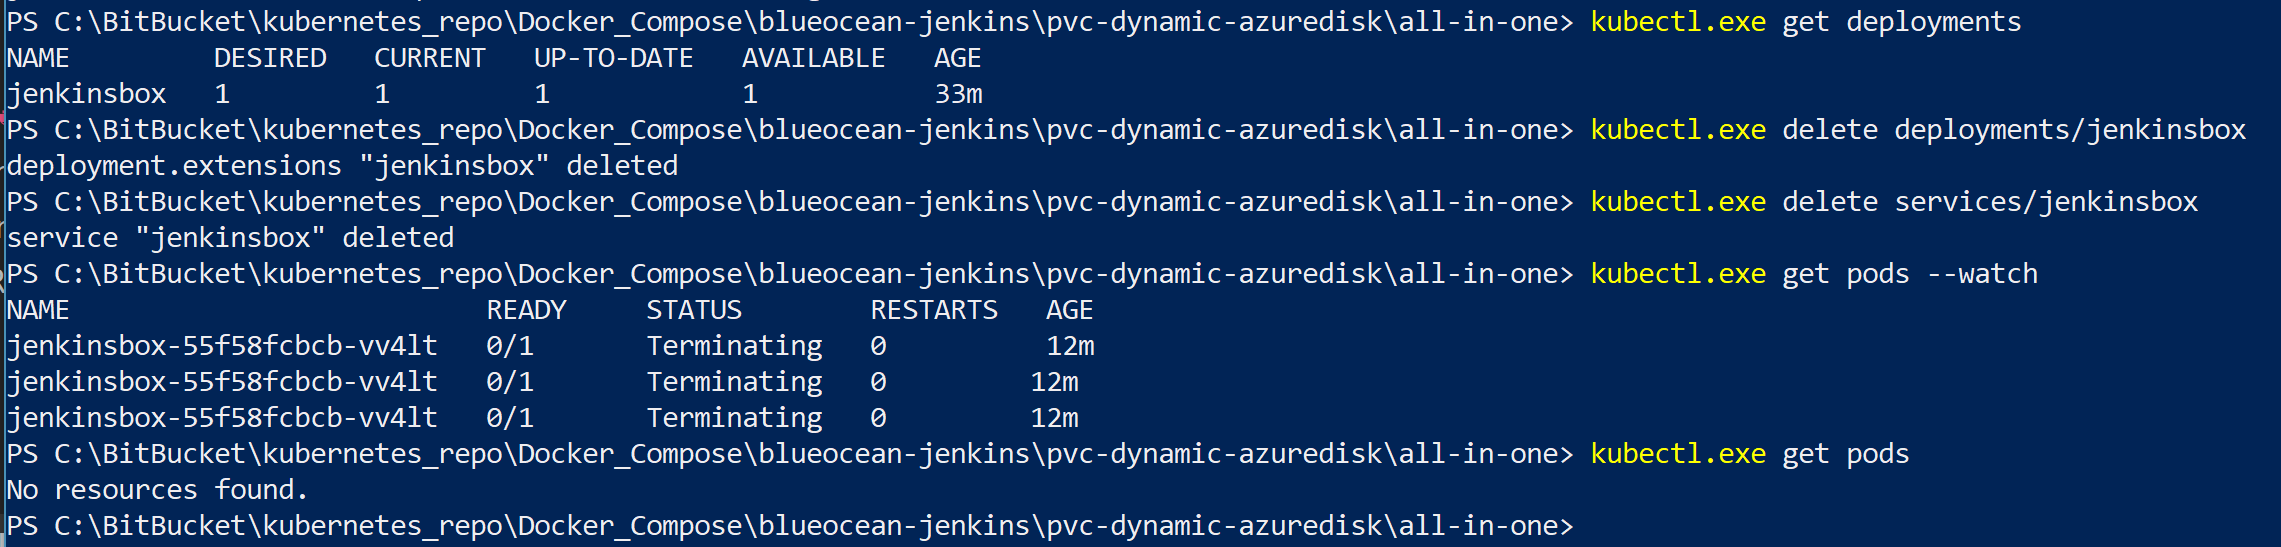 Provisioning a Jenkins Instance Container with Persistent